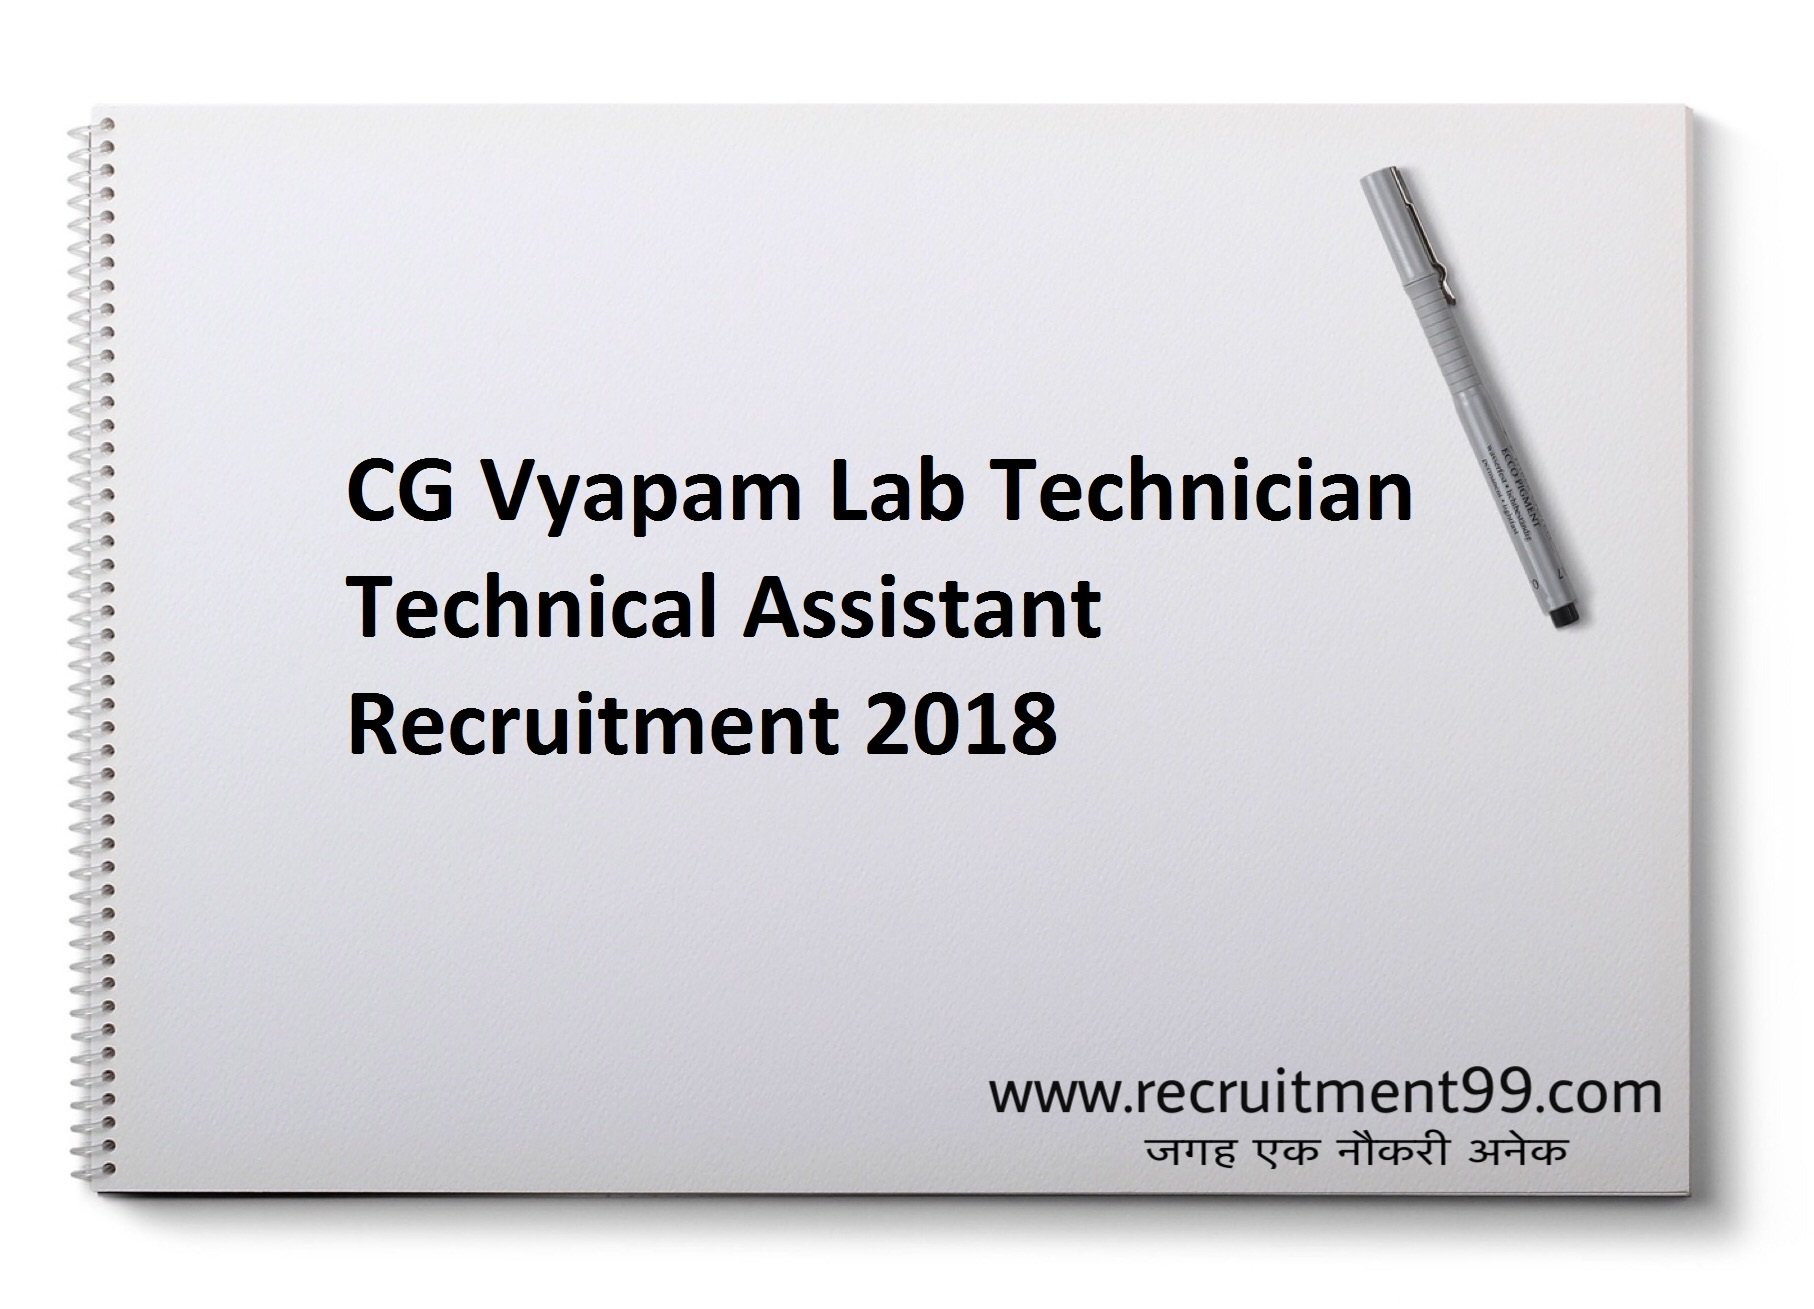 CG Vyapam Lab Technician Technical Assistant Recruitment Admit Card Result 2018